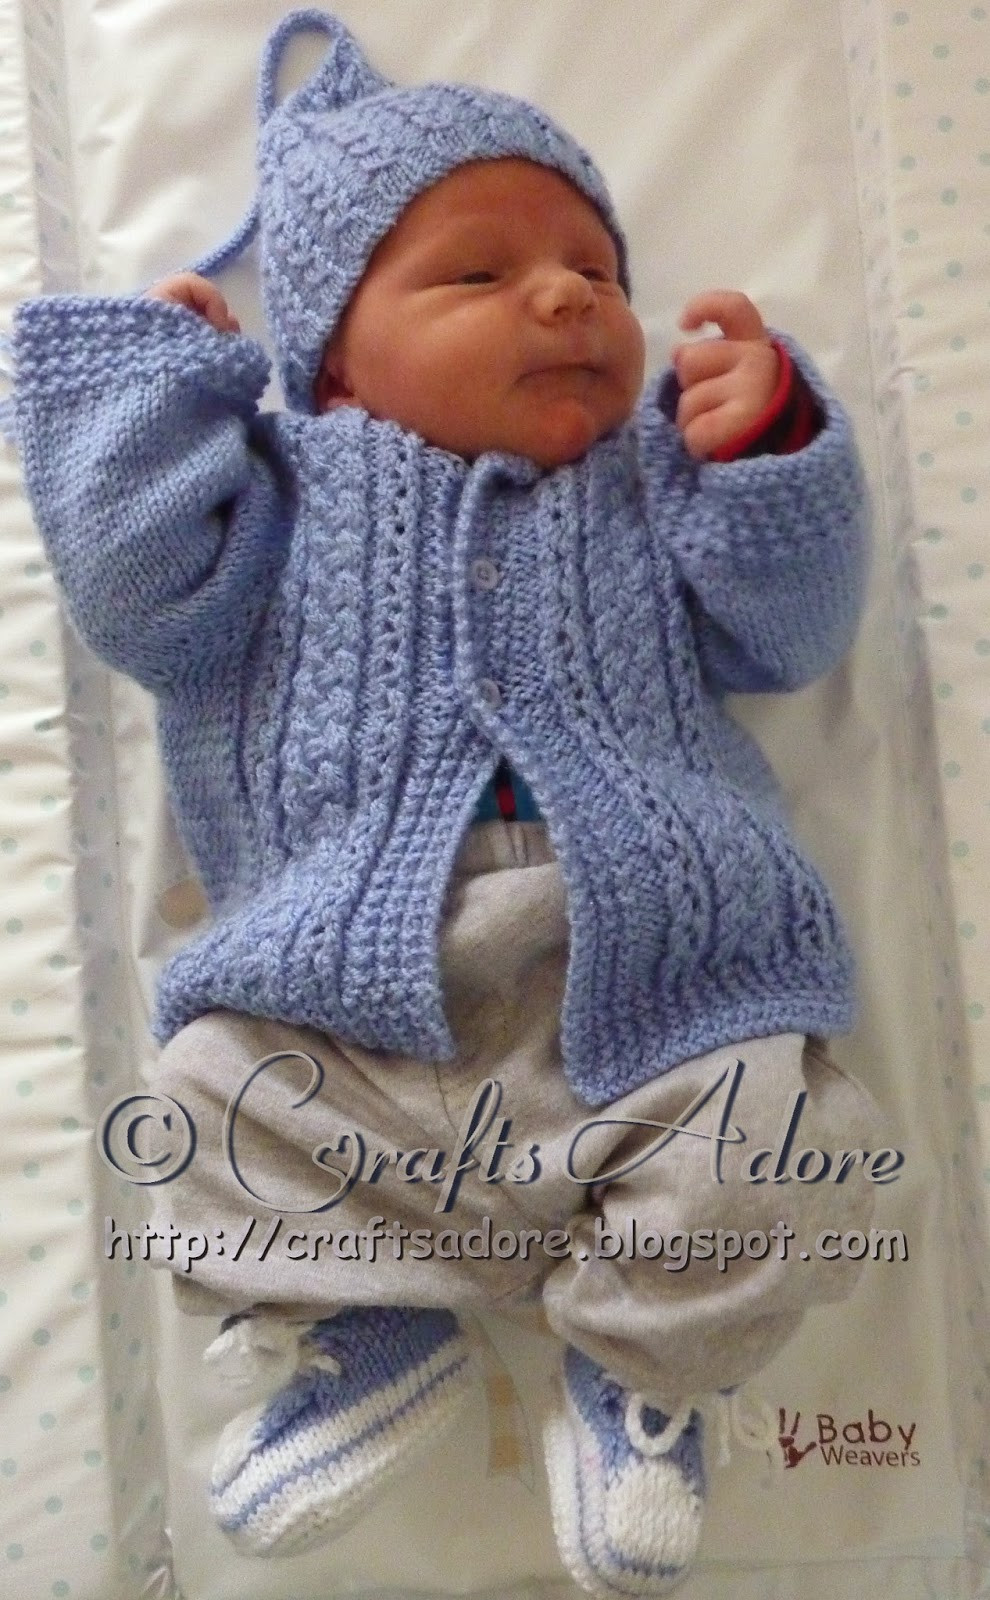 """CraftsAdore """"Handsome Cables"""" Knitted Baby Boy Cardigan"""